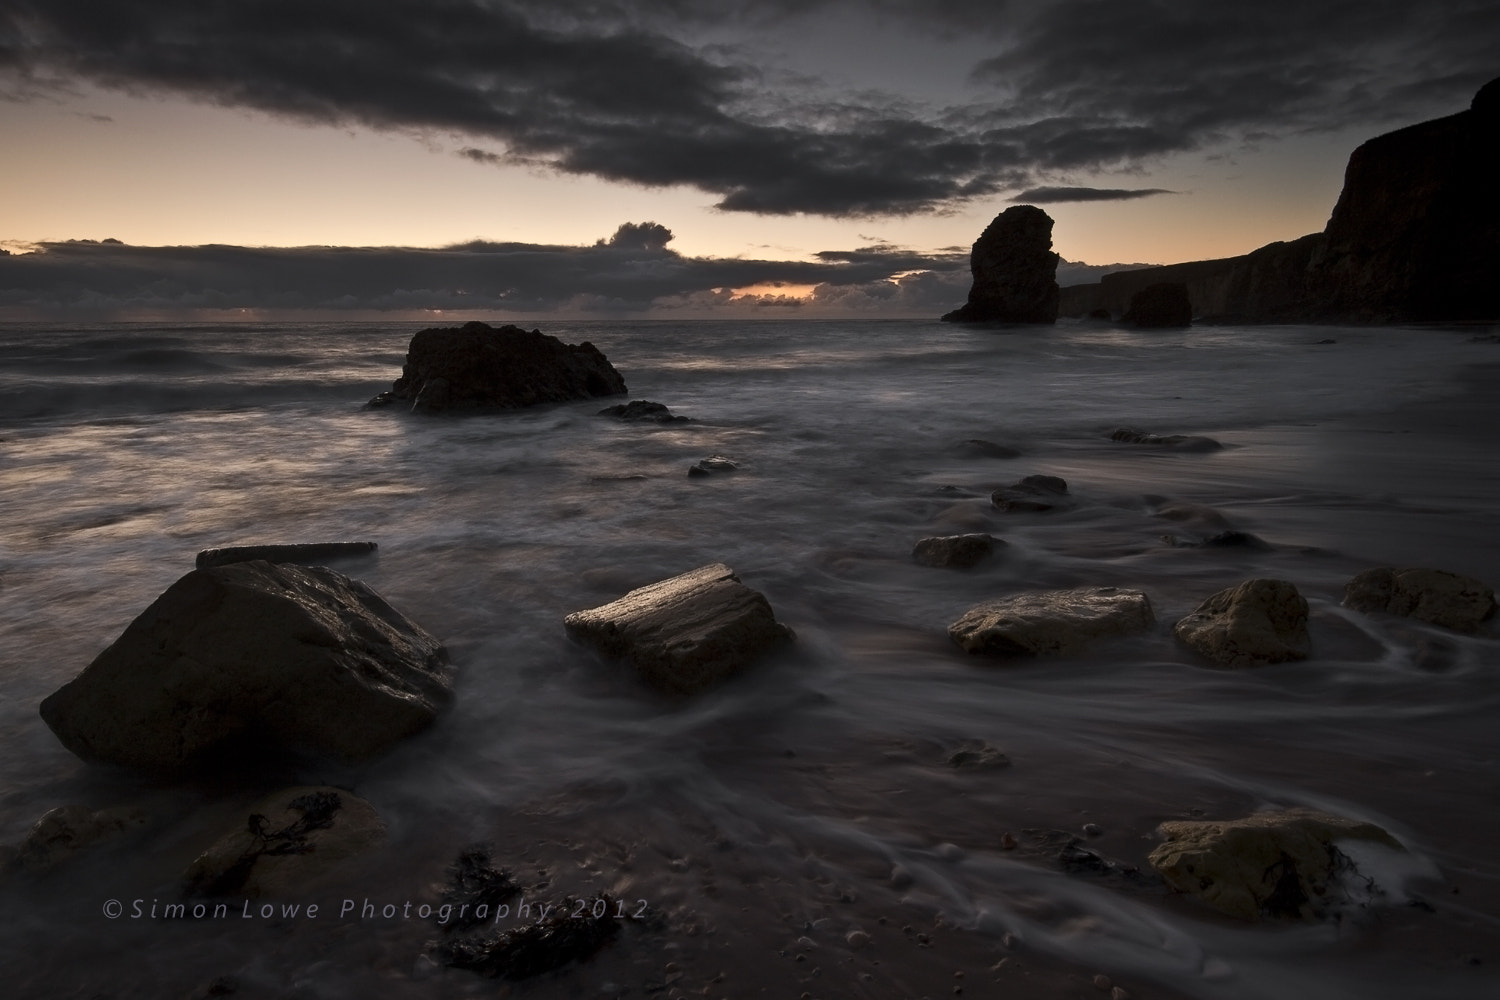 Photograph Glimmer by Simon Lowe on 500px